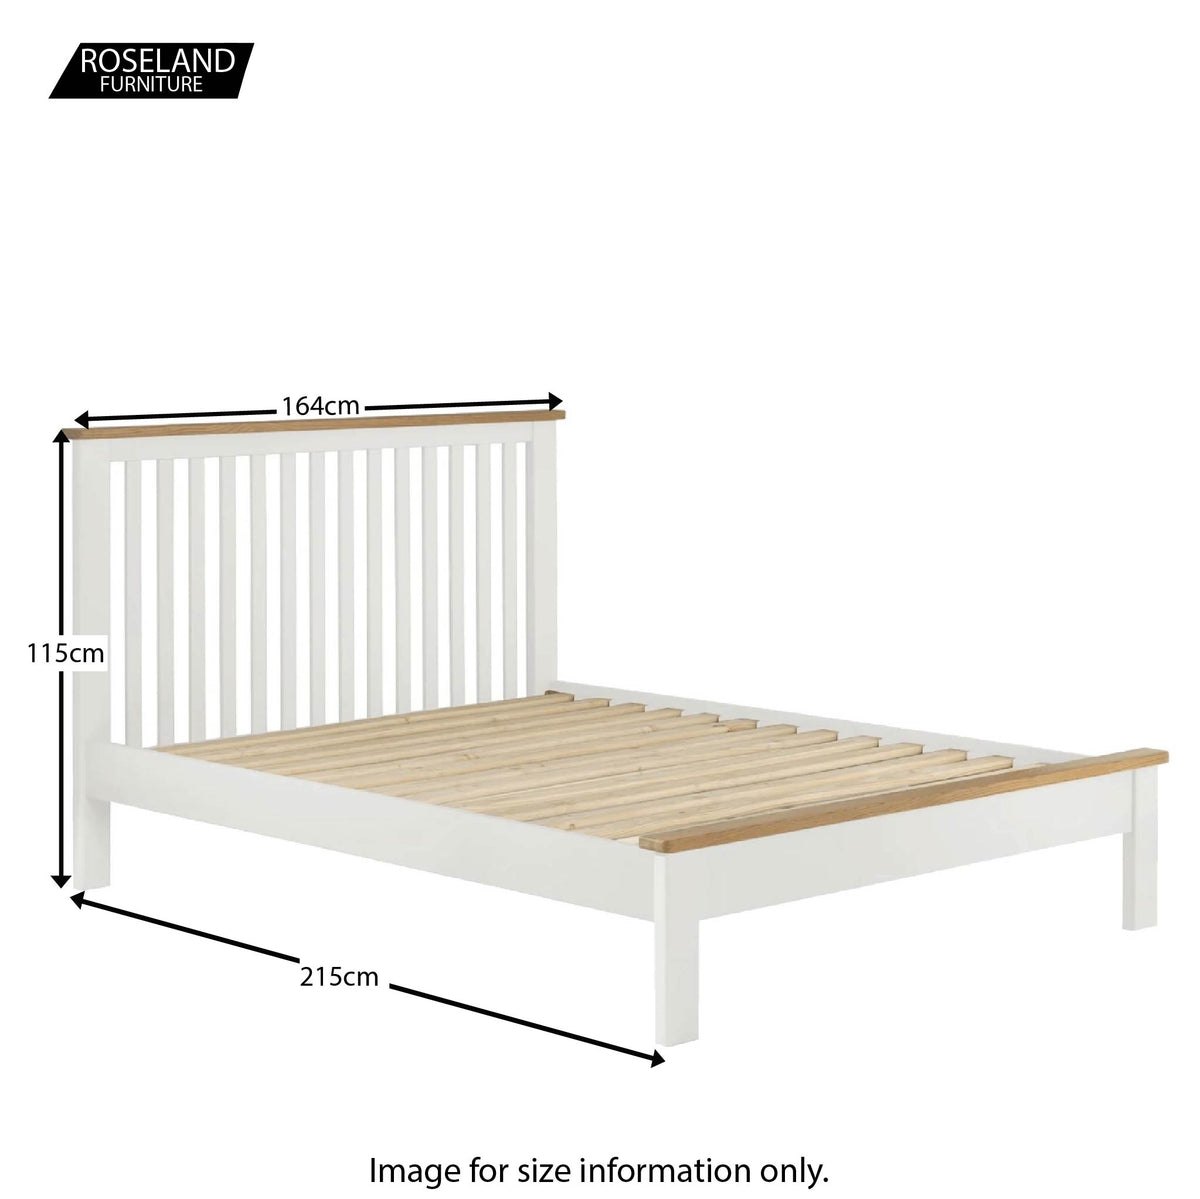 Padstow White 5' Bed Frame - Size Guide